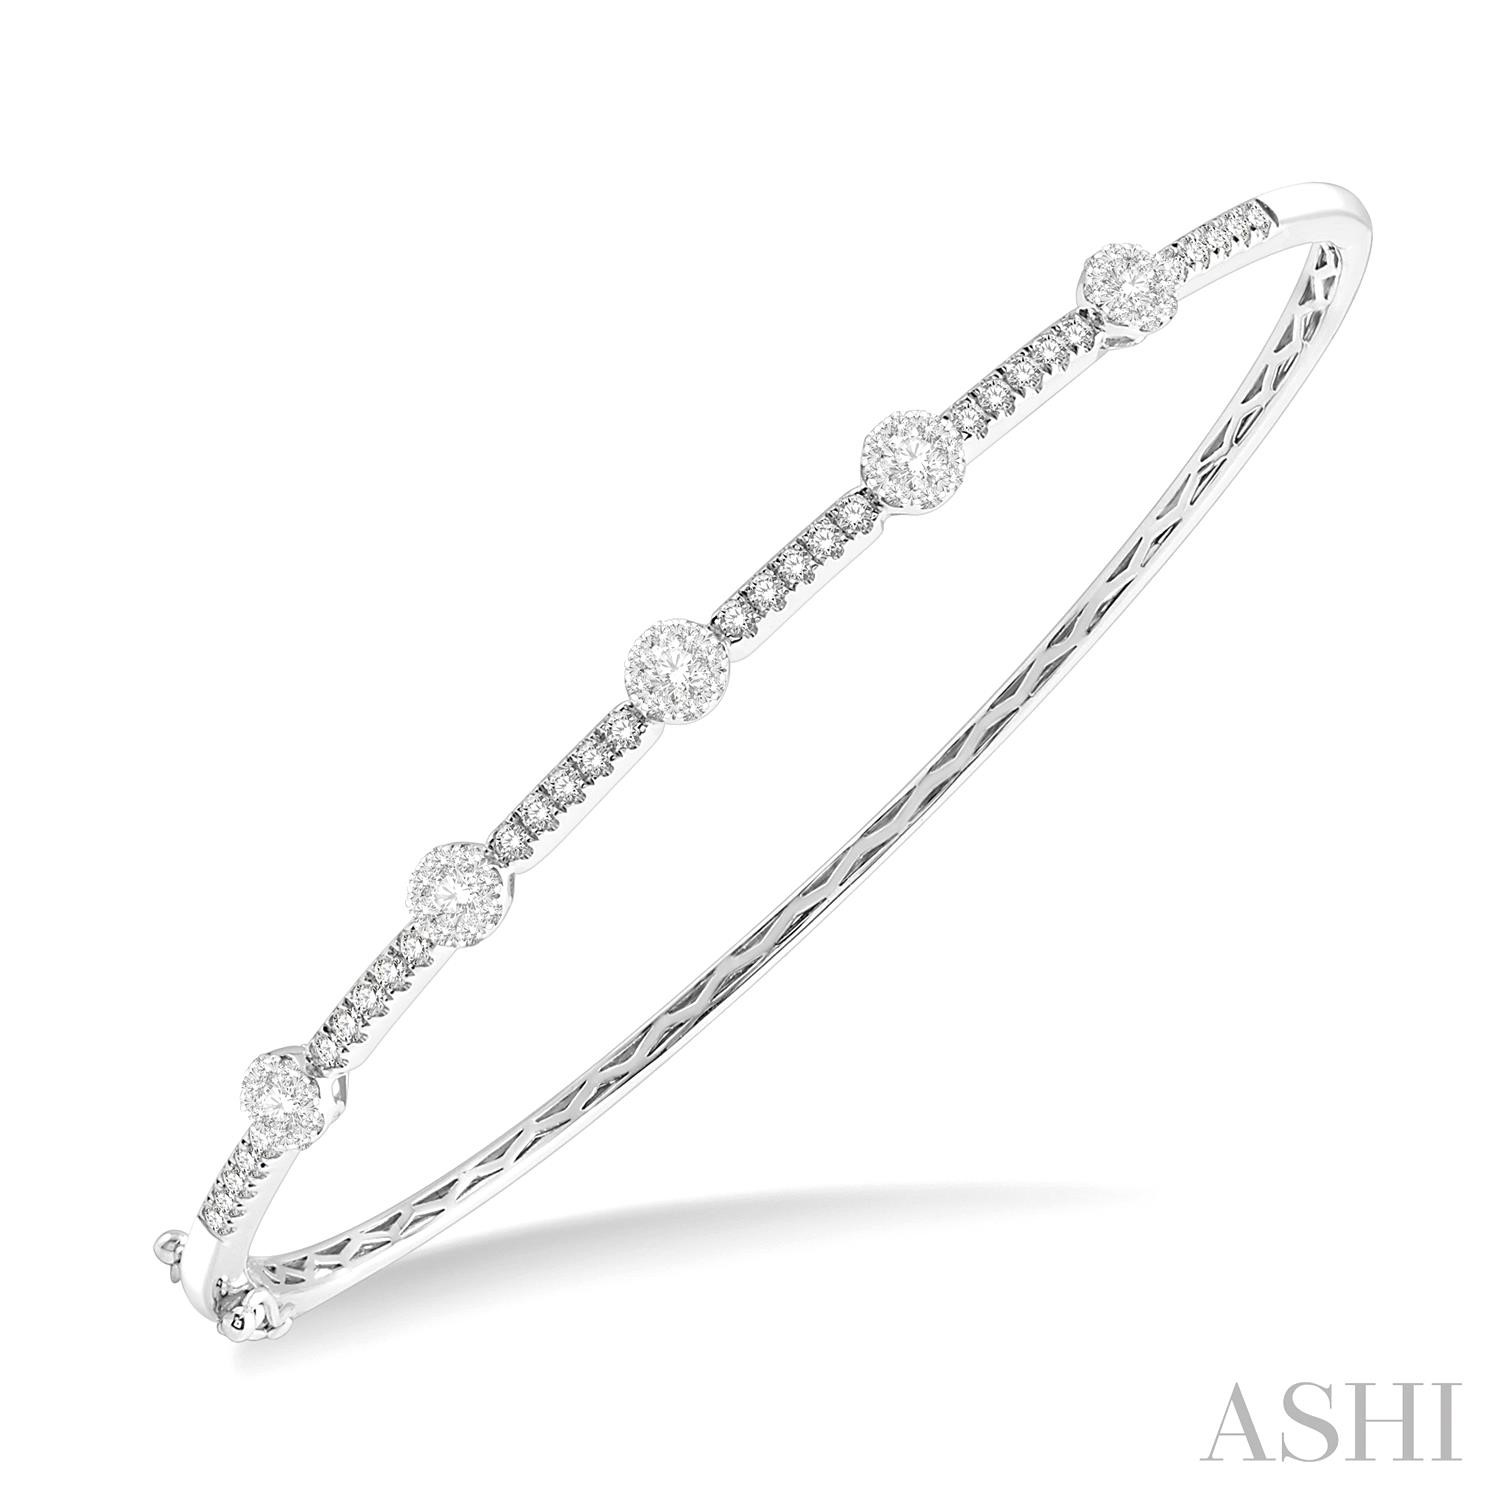 LOVEBRIGHT DIAMOND BANGLE